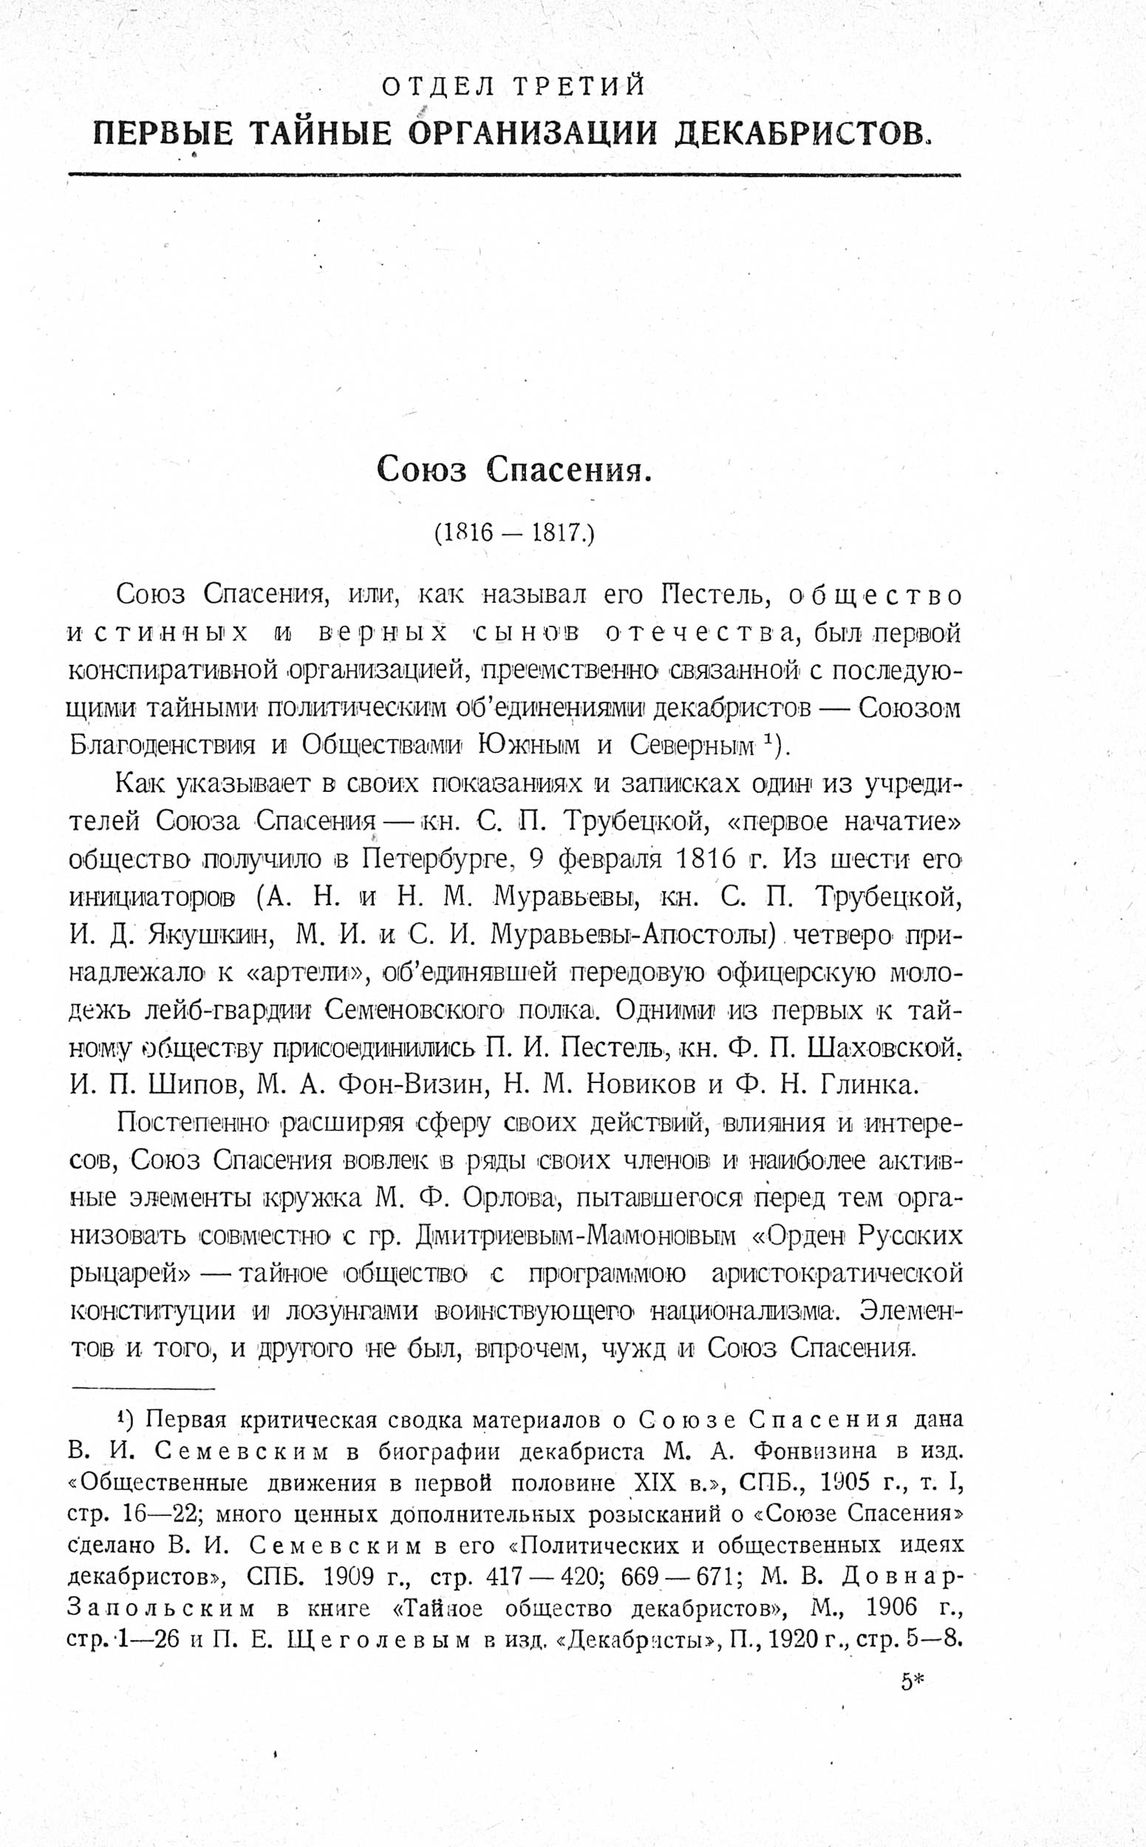 http://elib.shpl.ru/pages/625650/zooms/7